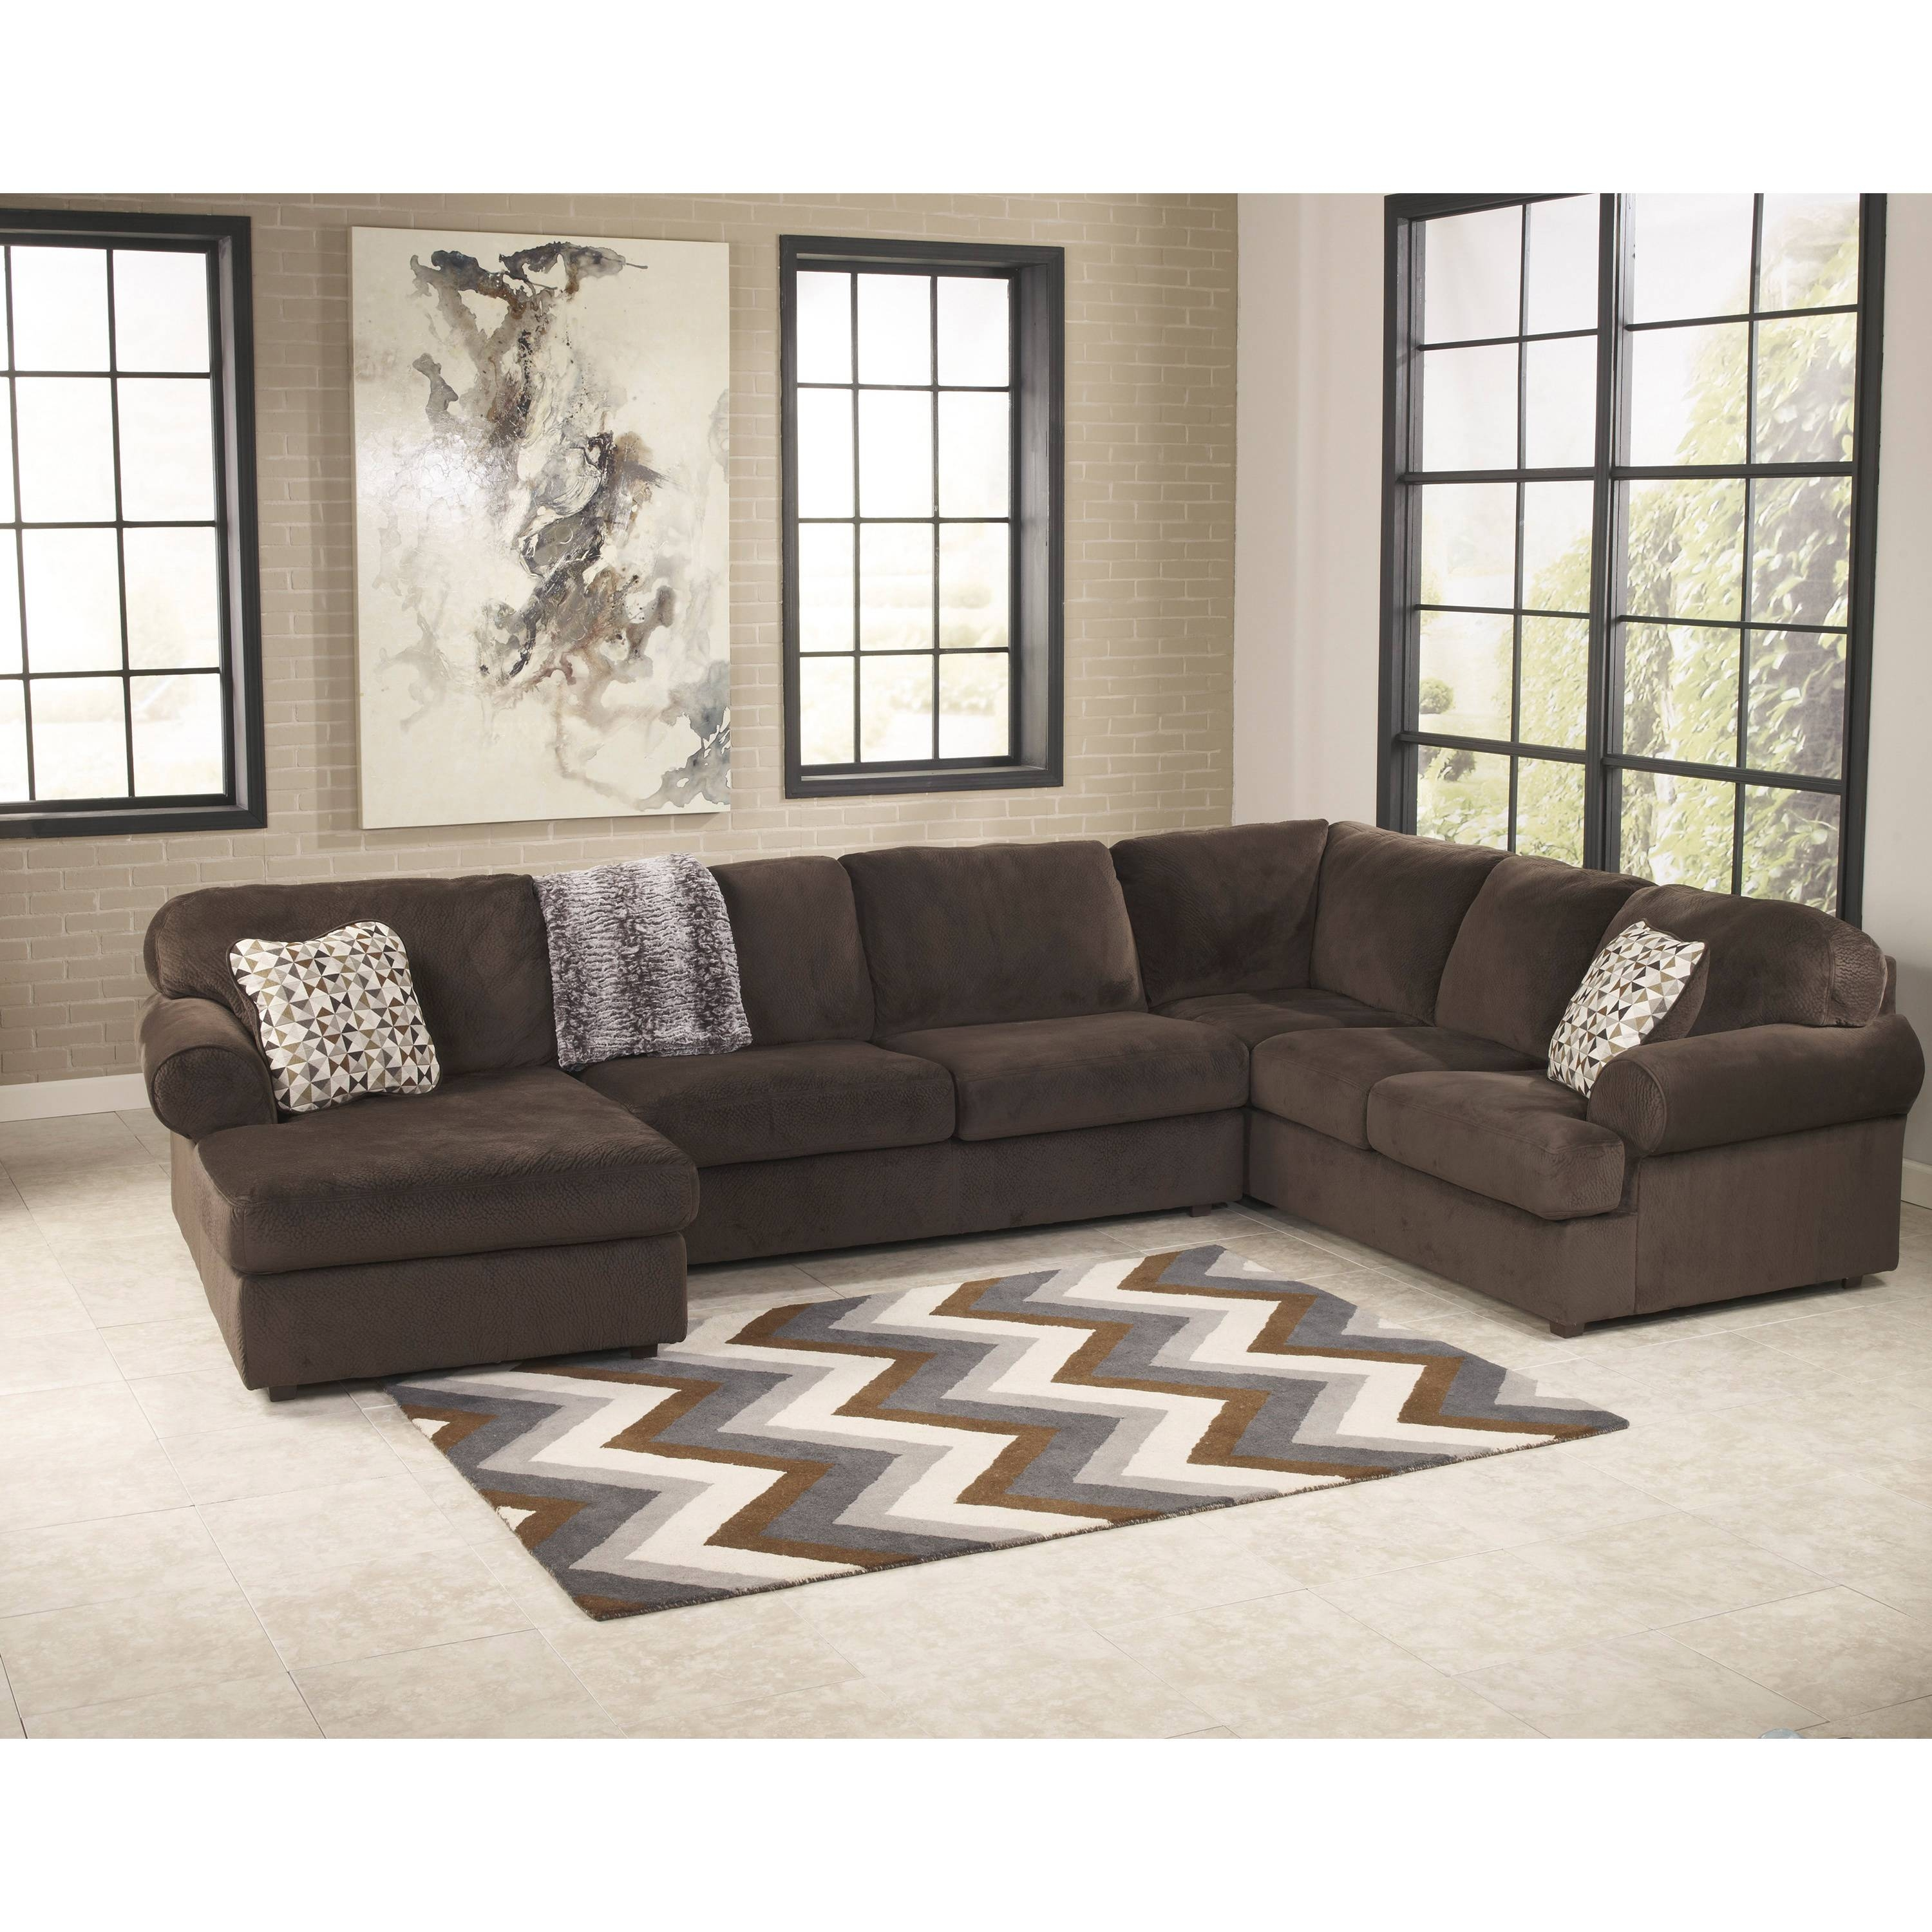 Living Room: Luxury L Shaped Couch Covers For Modern Living Room inside 3 Piece Sectional Sofa Slipcovers (Image 21 of 33)